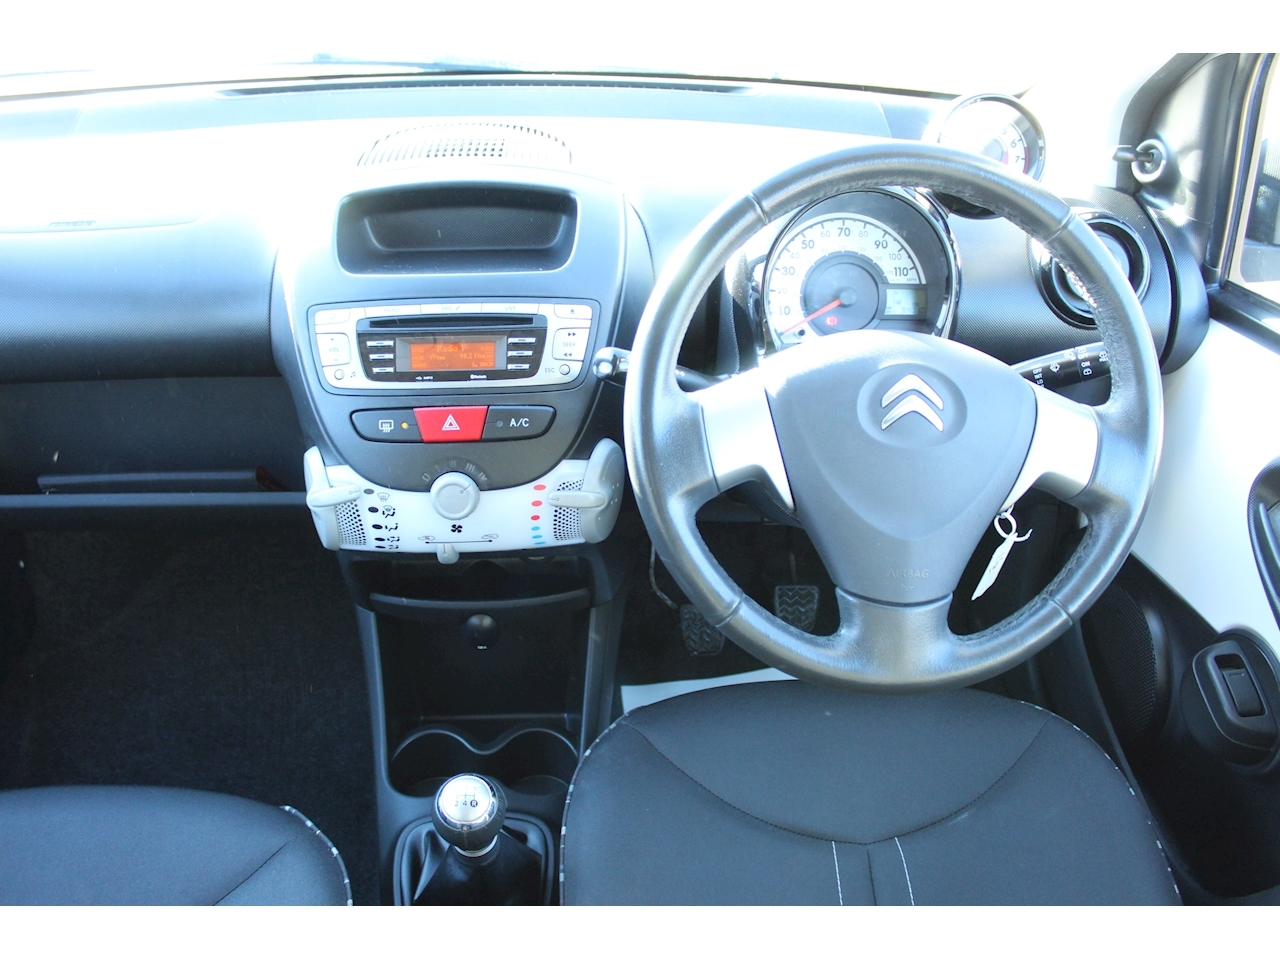 Citroen C1 Vtr Plus Hatchback 1.0 Manual Petrol